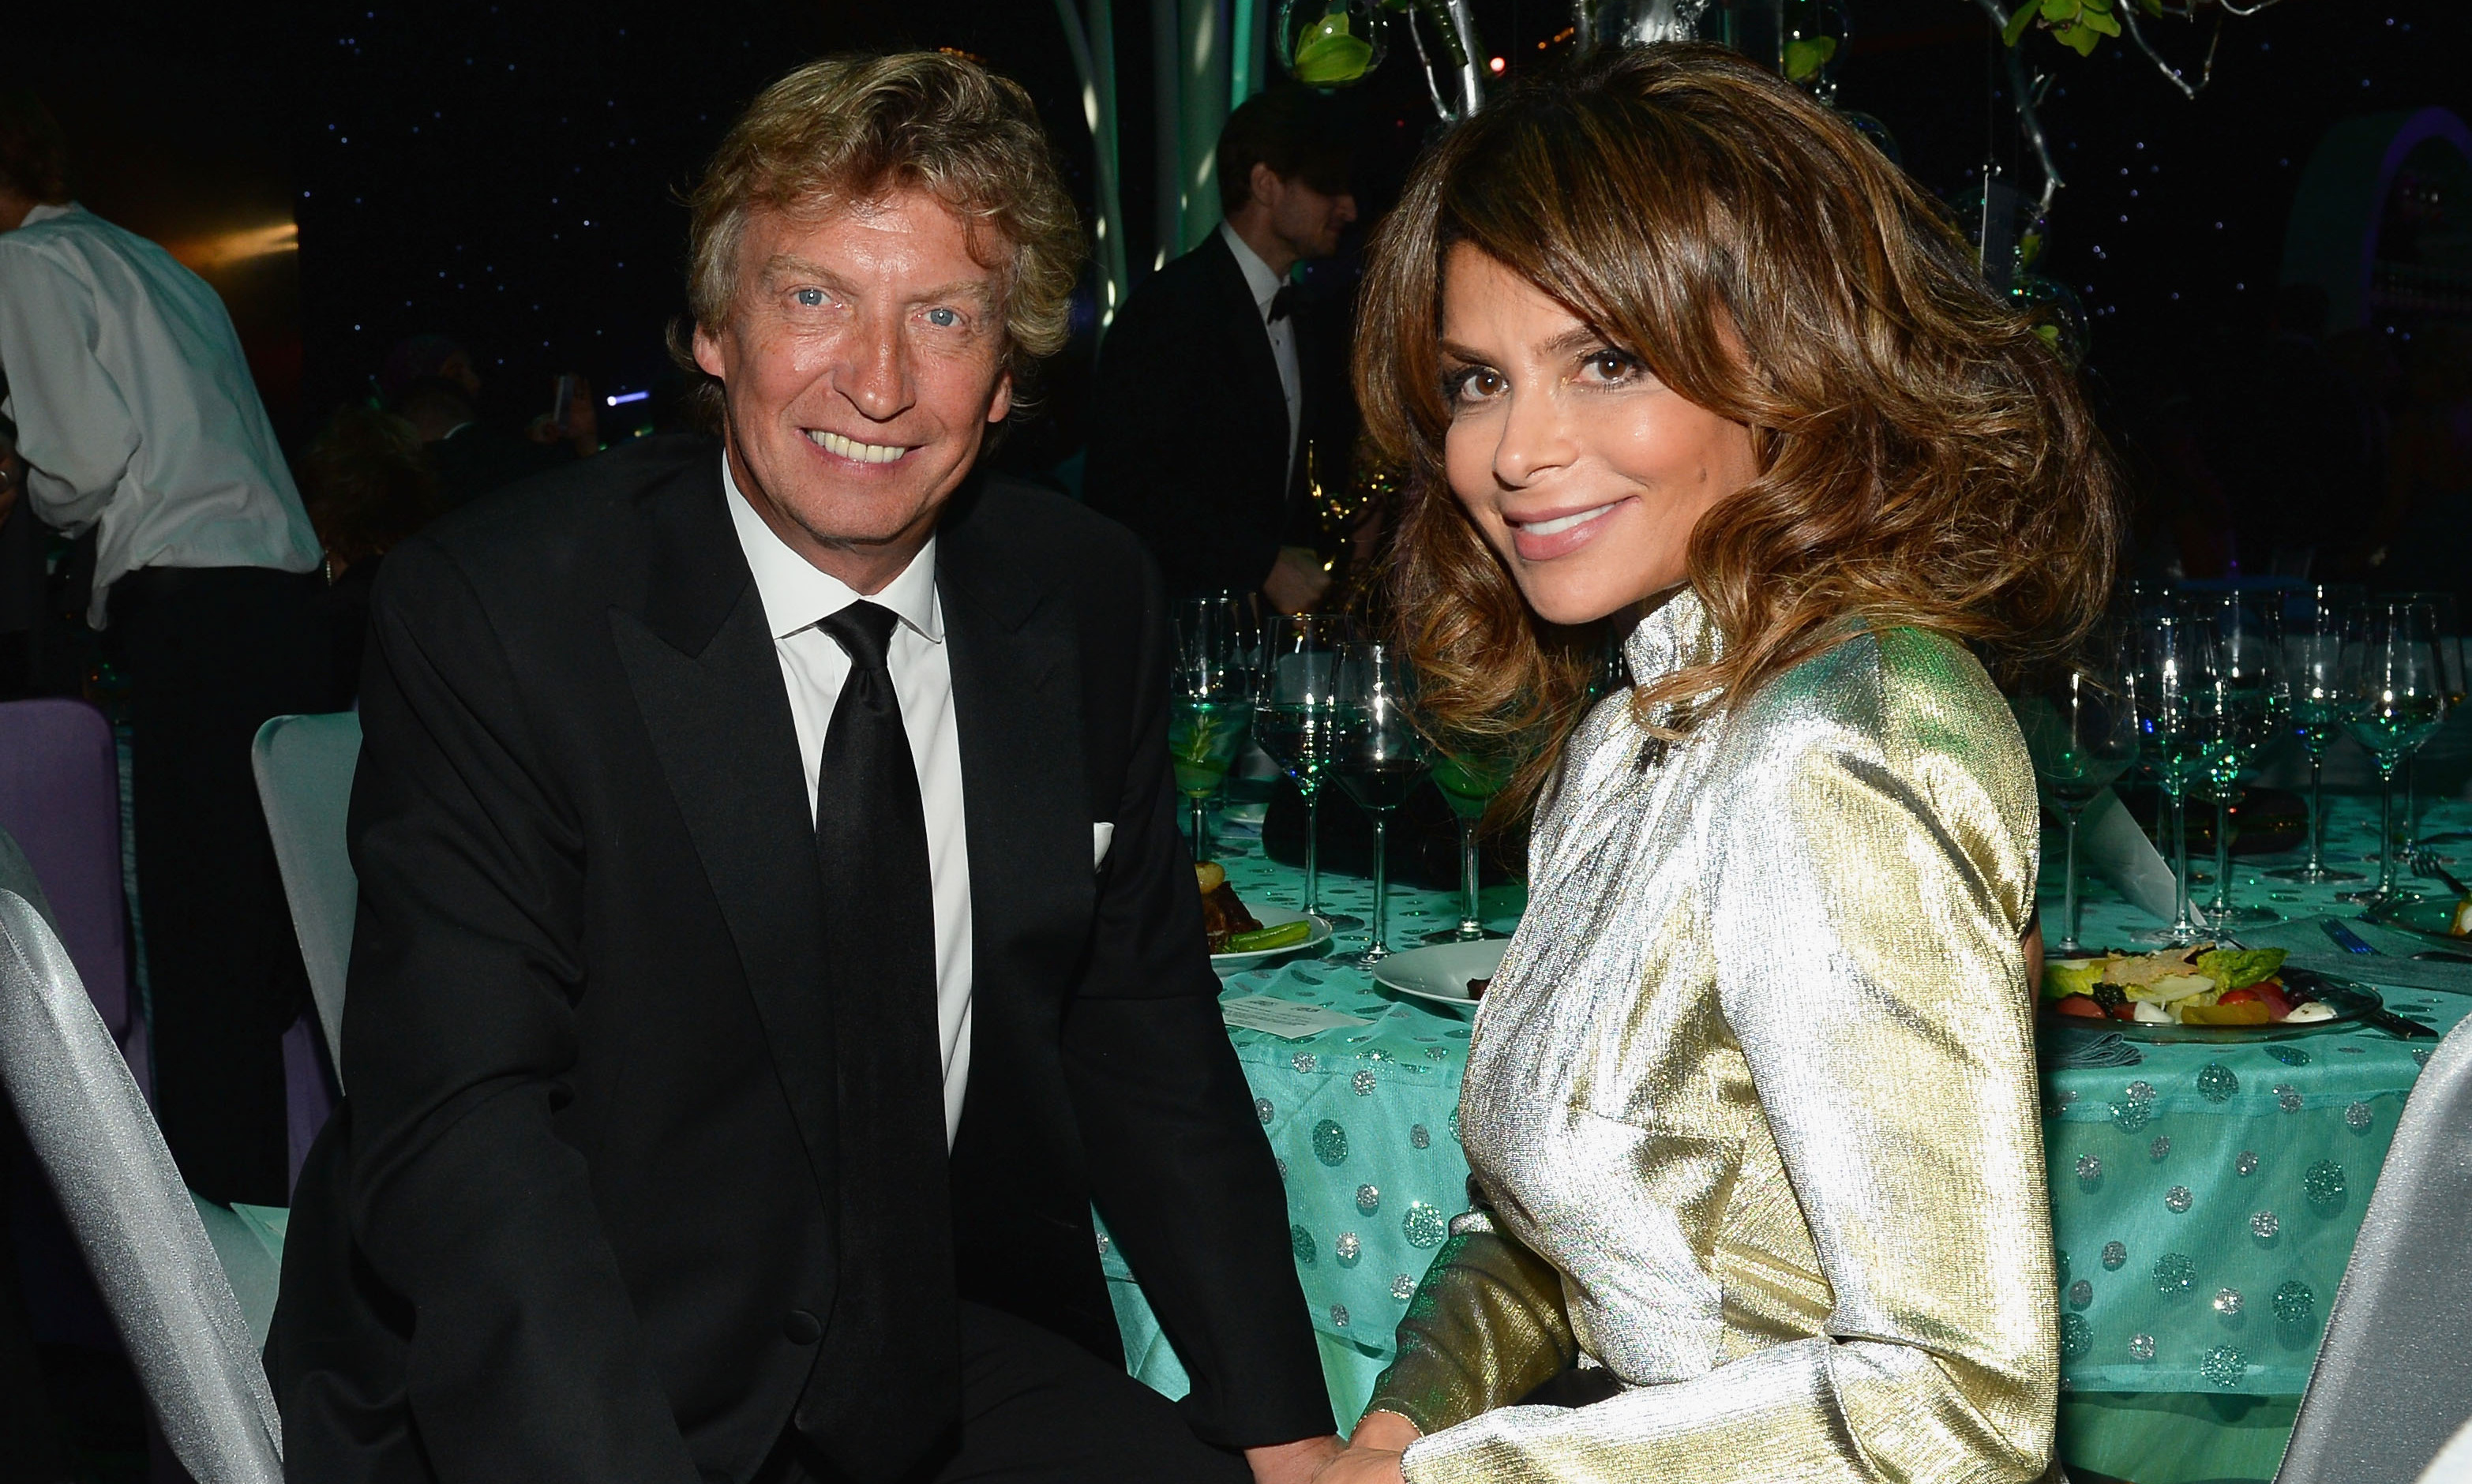 Celebrity judges Nigel Lythgoe and Paula Abdul take in the scene at the Governor's Ball.